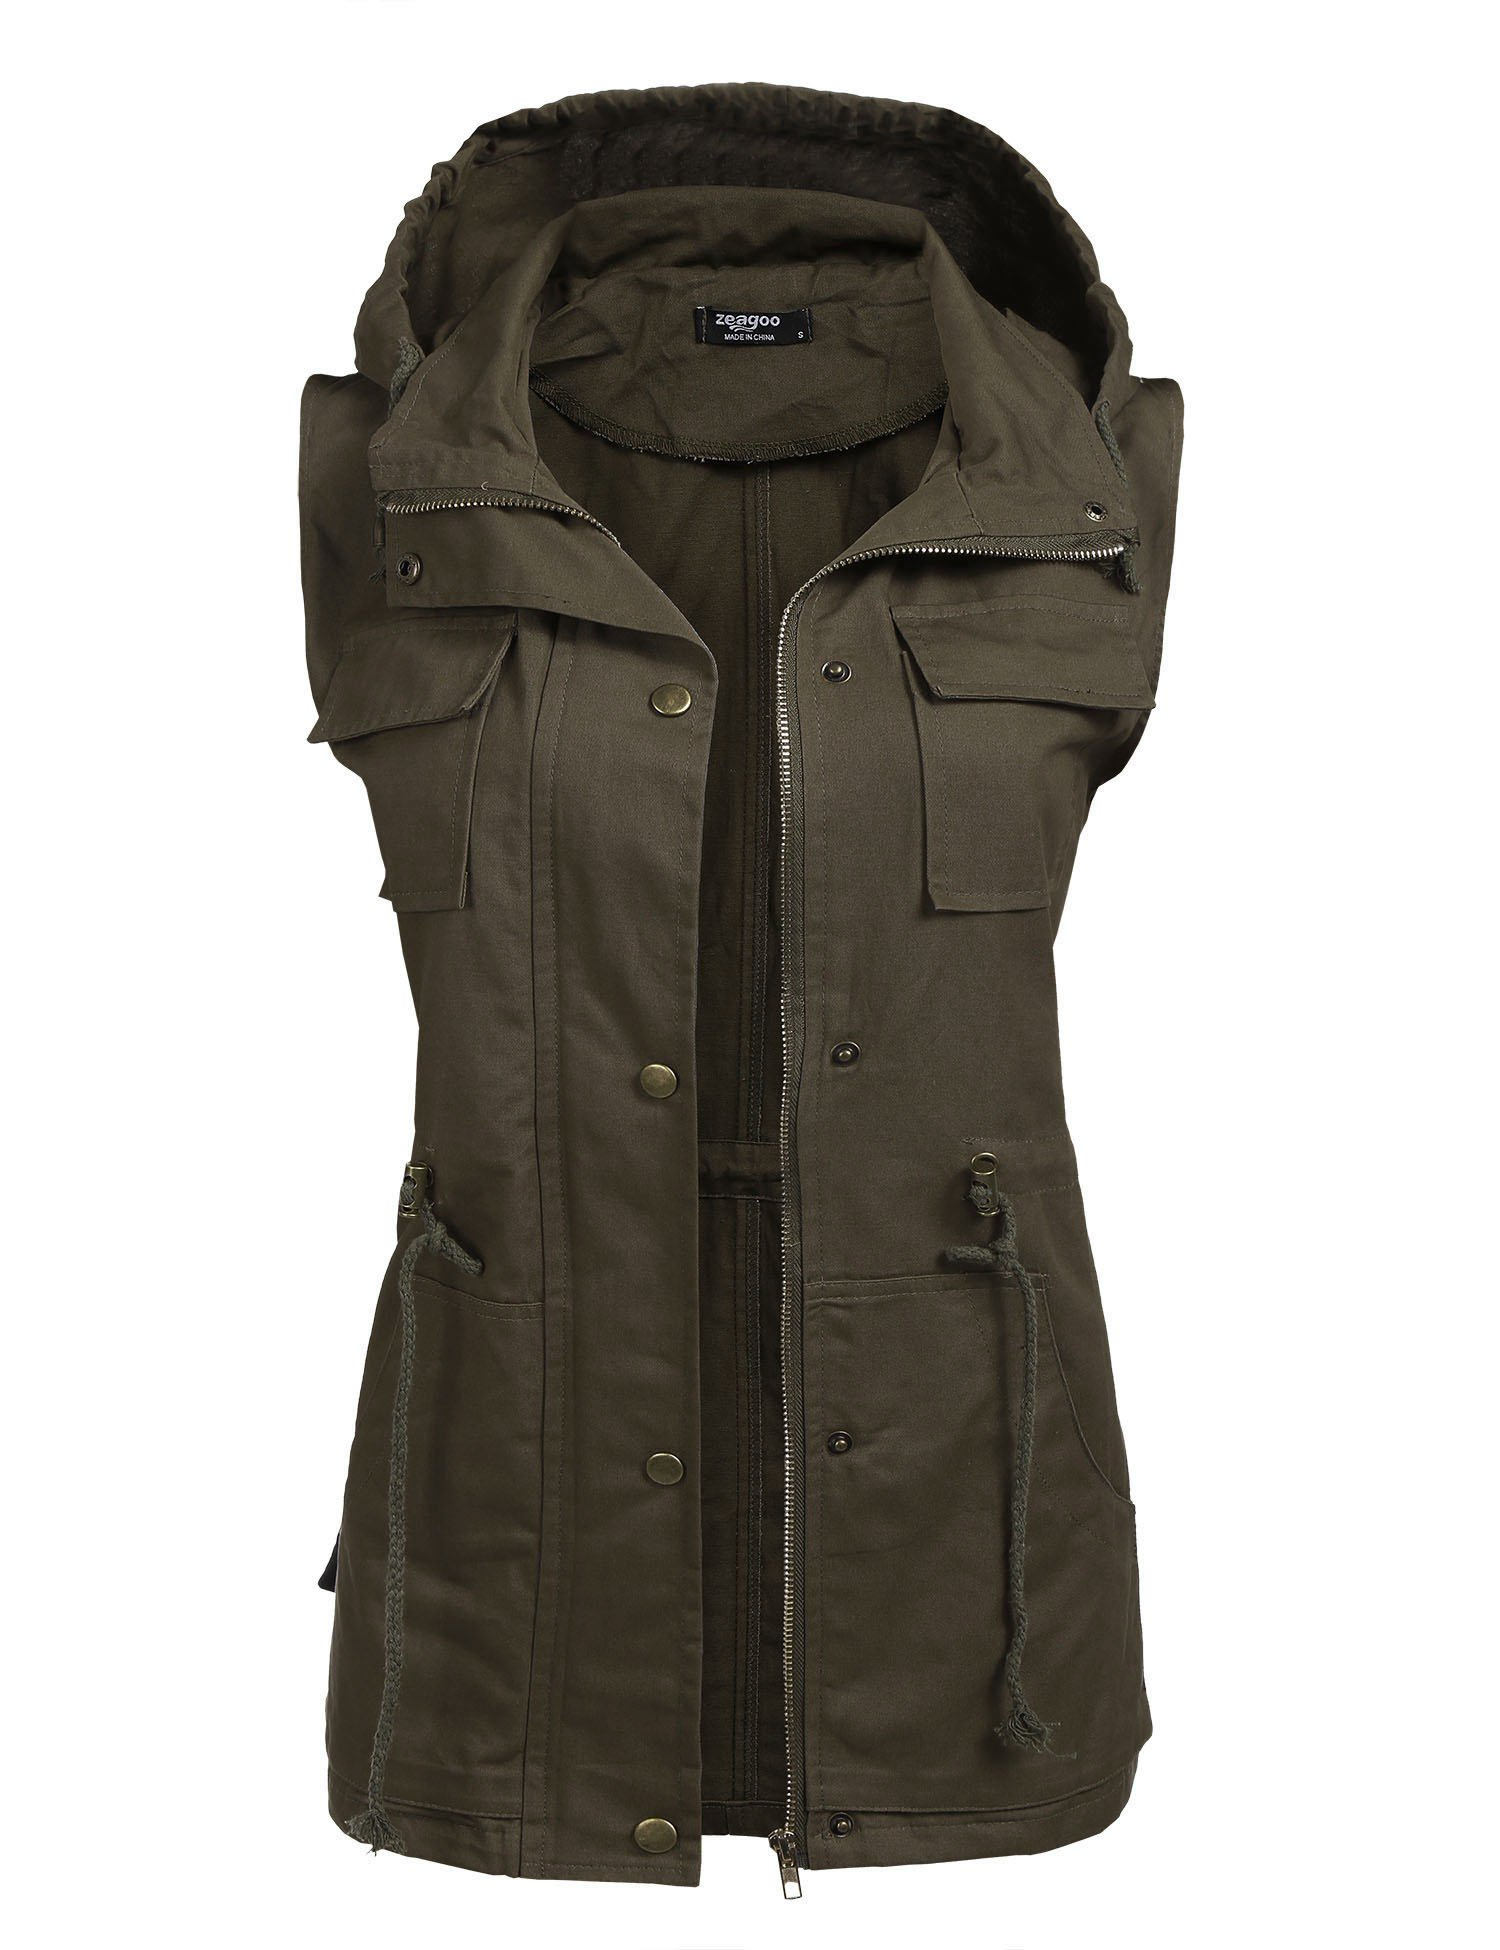 Beyove Womens Lightweight Sleeveless Military Anorak Vest (S, (A) Army Green 1) by Beyove